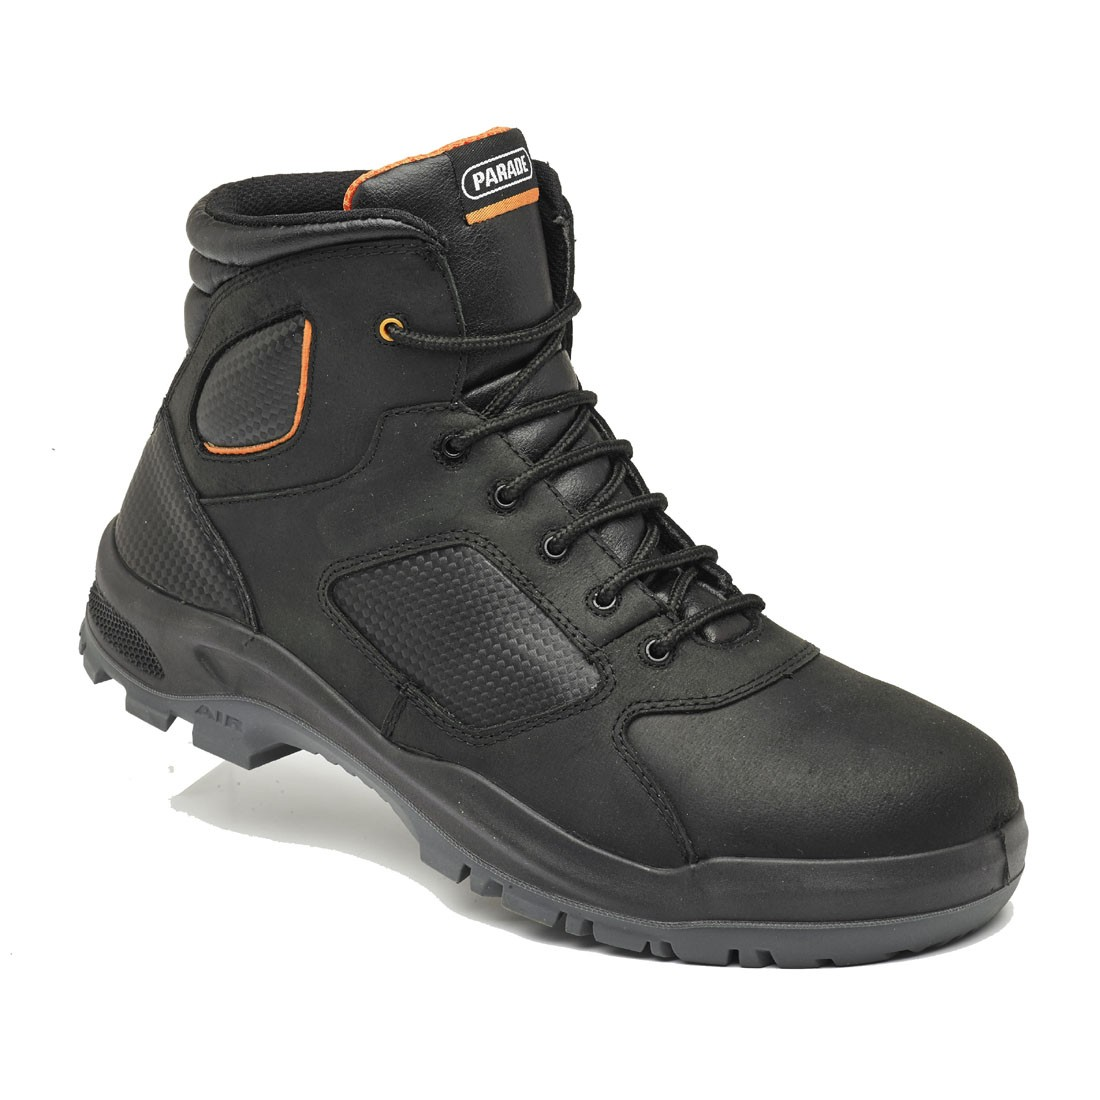 Parade Footwear Treyk Black Unisex Metal Free Lightweight Safety Boots